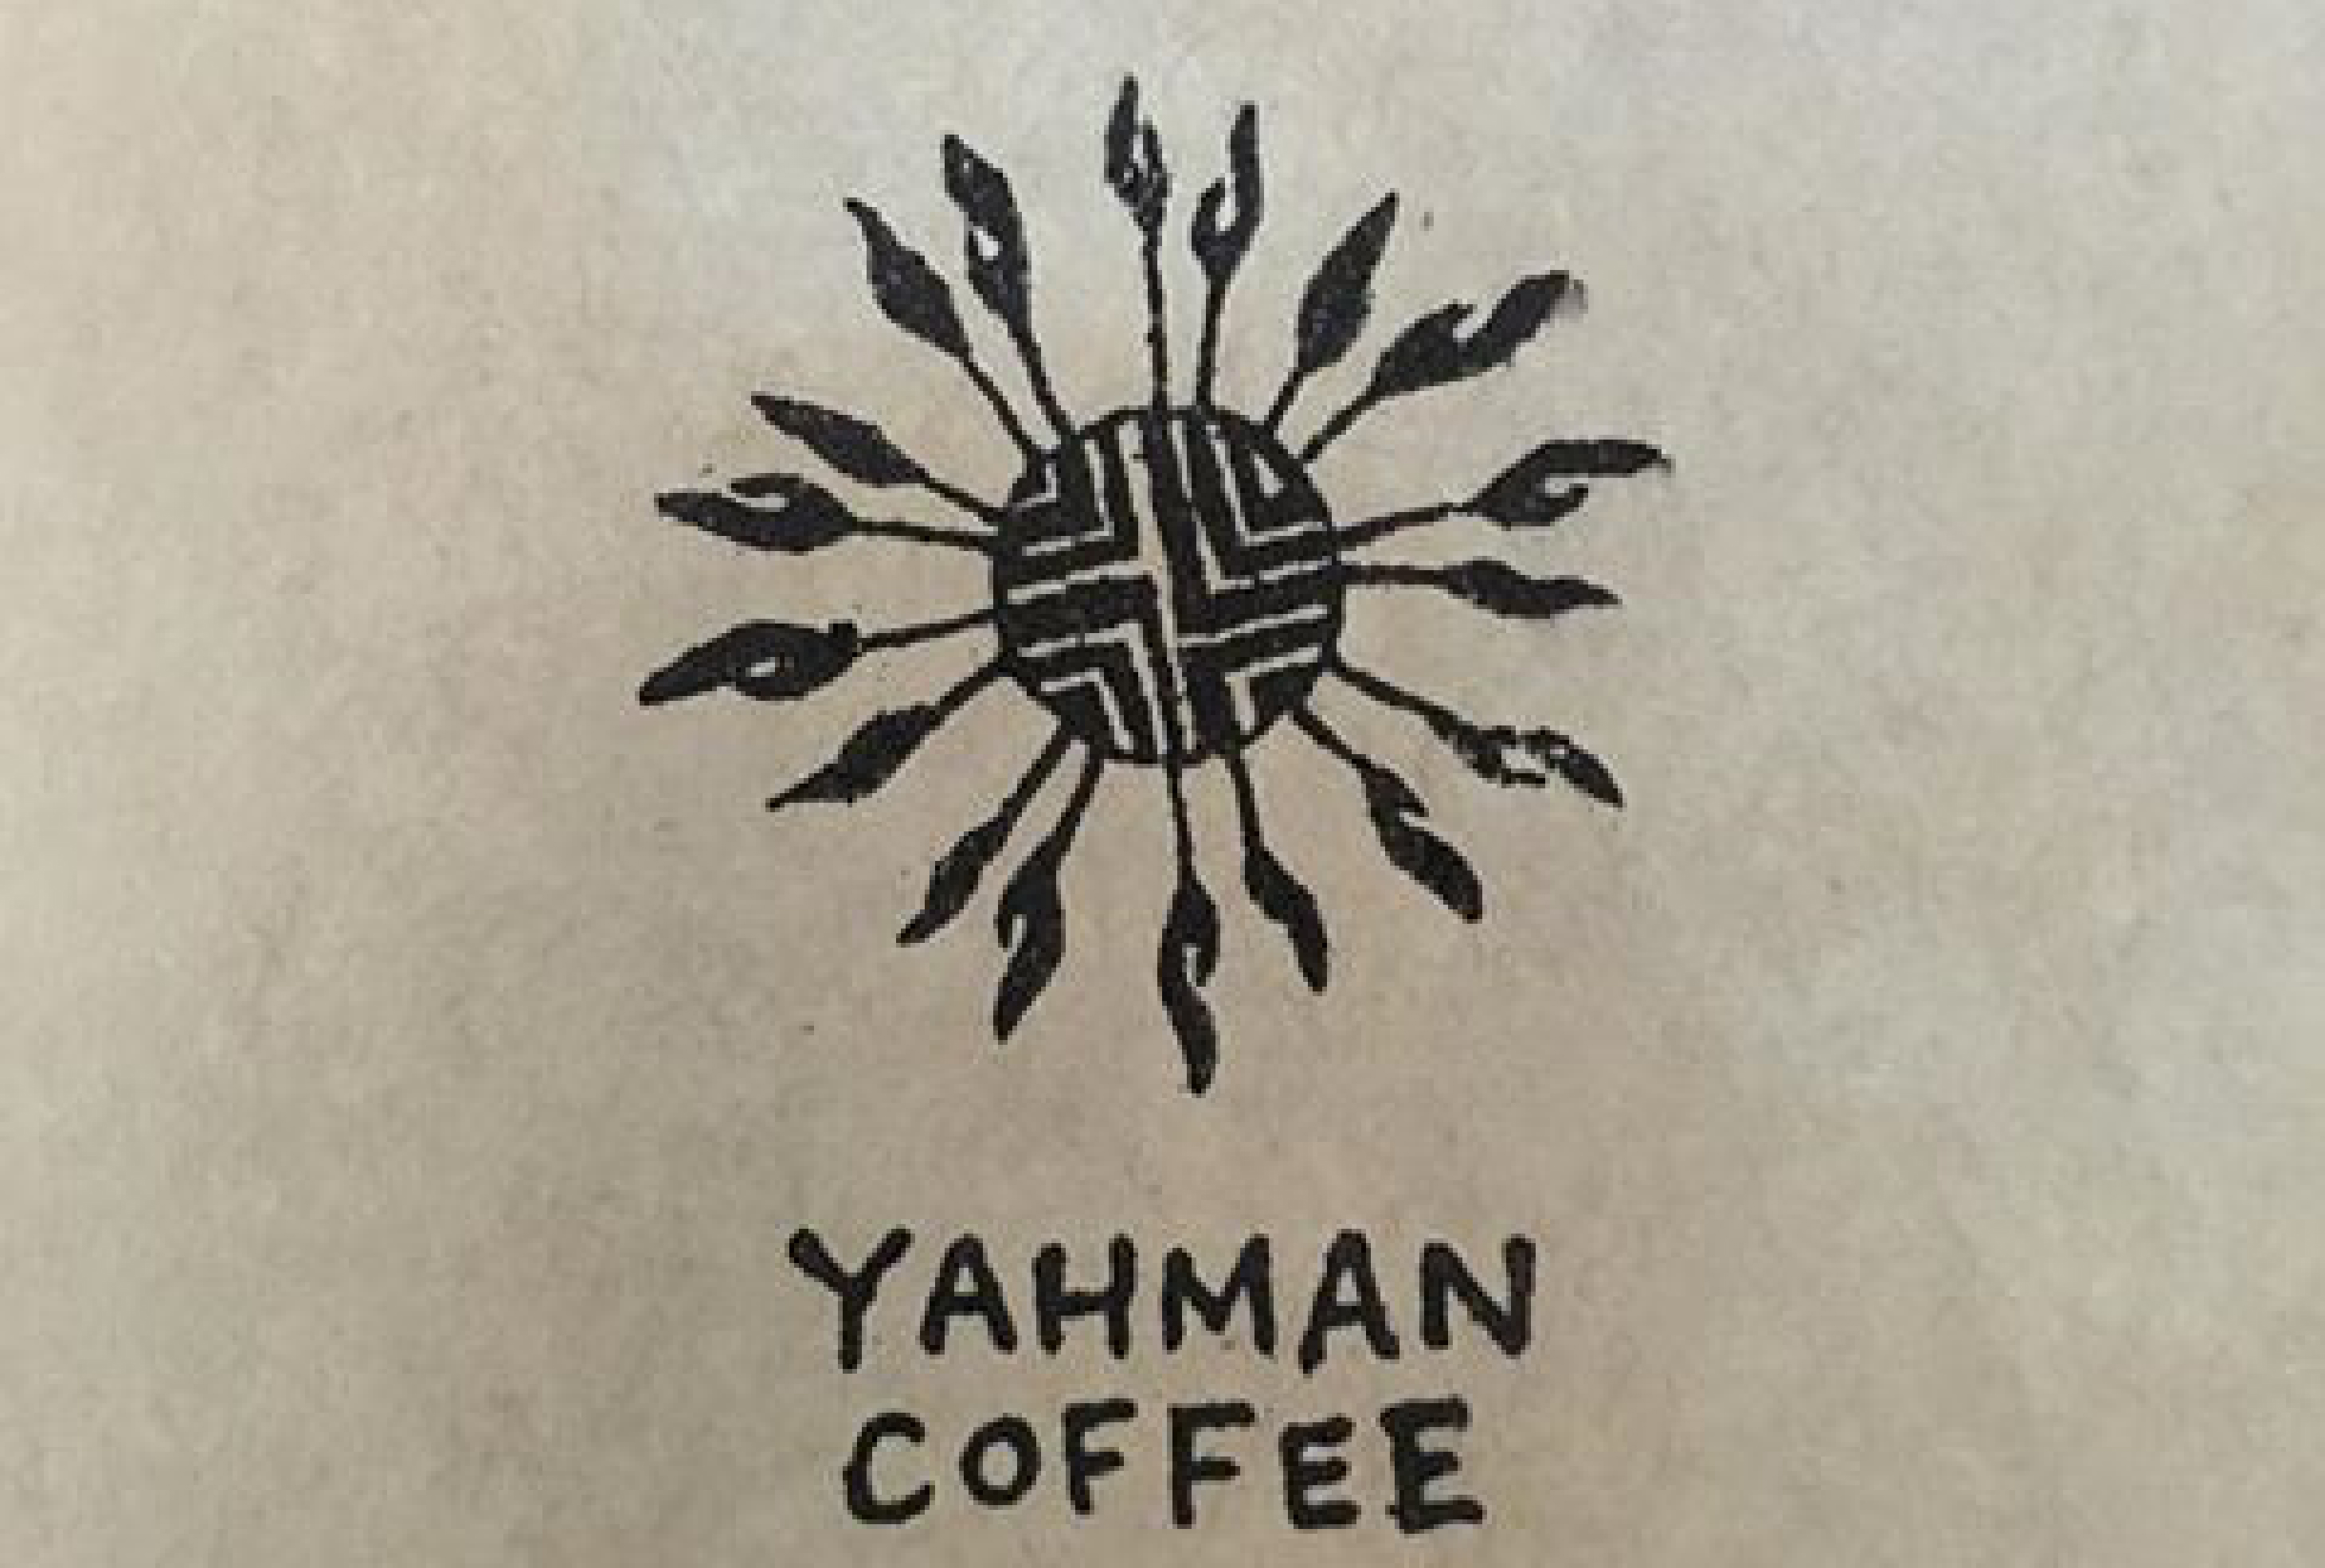 Yahman Coffee